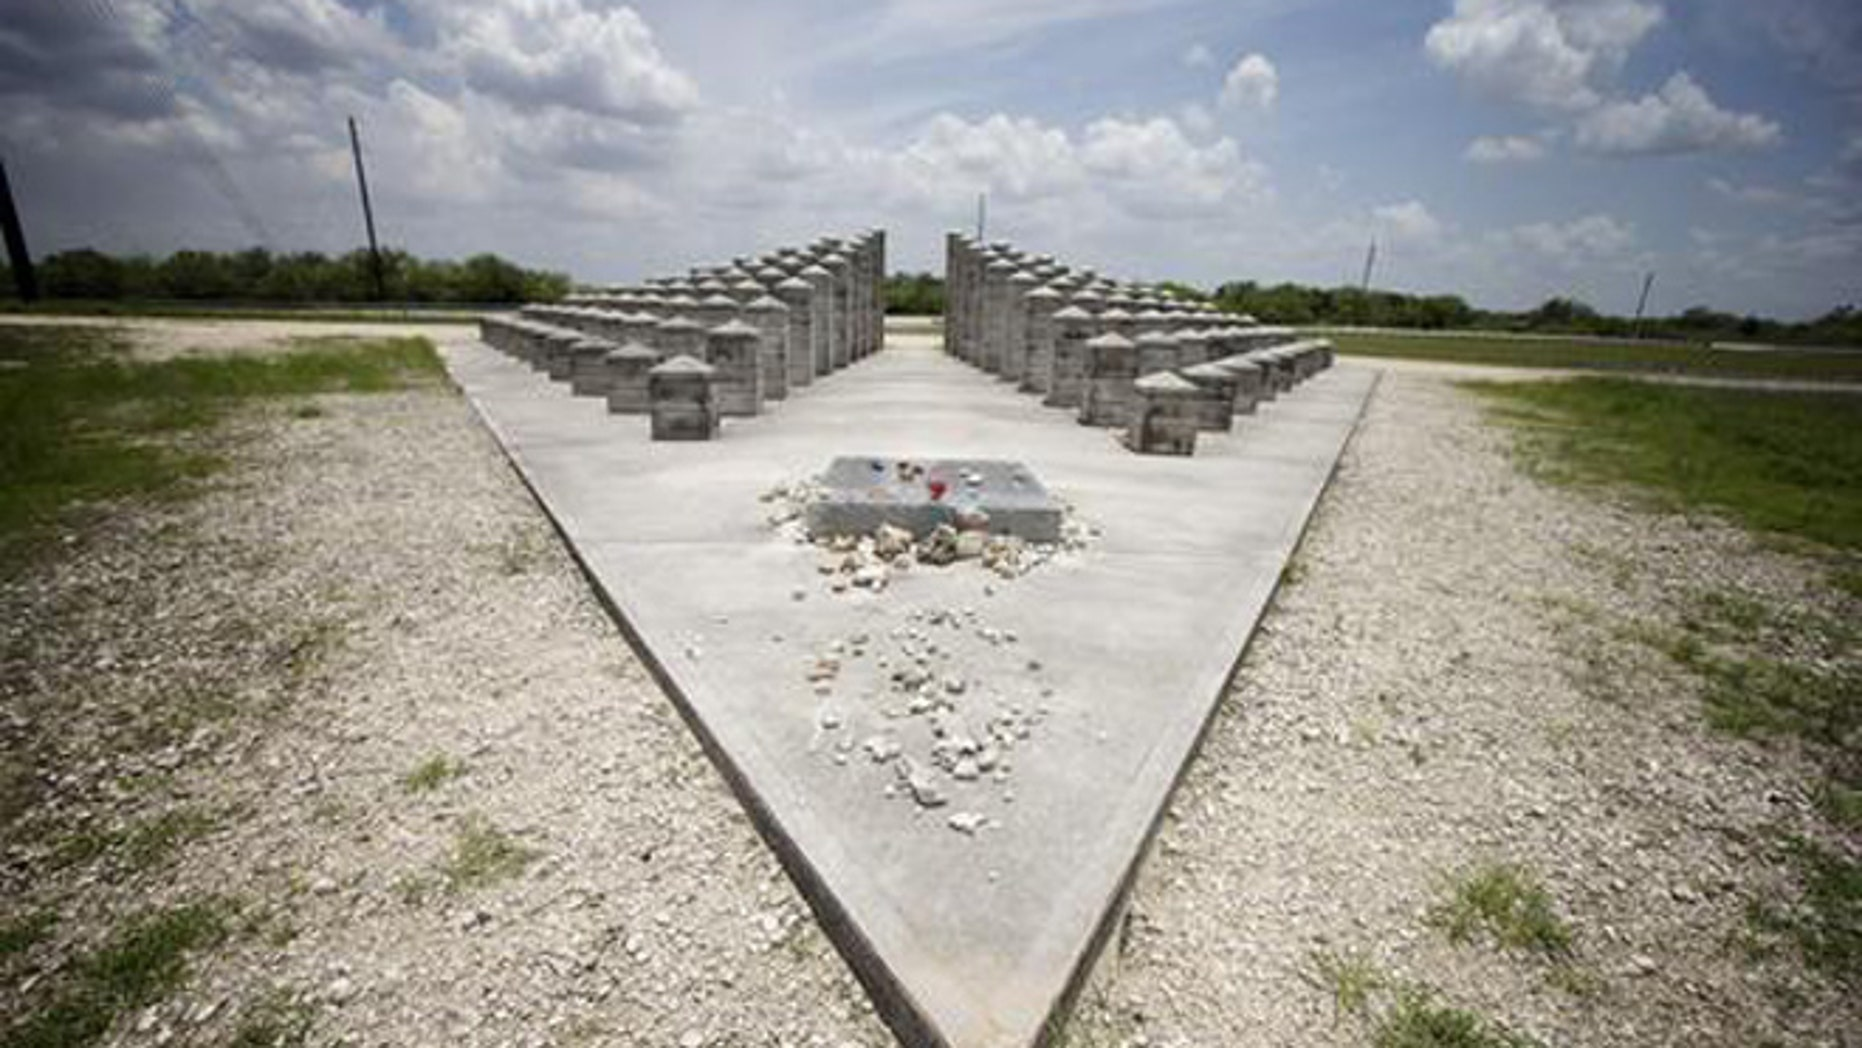 HOLD FOR STORY BY JENNIFER KAY- In this June 25, 2014 file photo, the ValuJet Memorial is seen in the Florida Everglades in  Everglades National Park. ValuJet Flight 592 crashed while trying to make an emergency return to Miami on May 11,1996, killing all 110 people on board. Relatives of the victims of Flight 592 will meet in the Florida Everglades to mark the 20th anniversary. (AP Photo/J. Pat Carter, File)